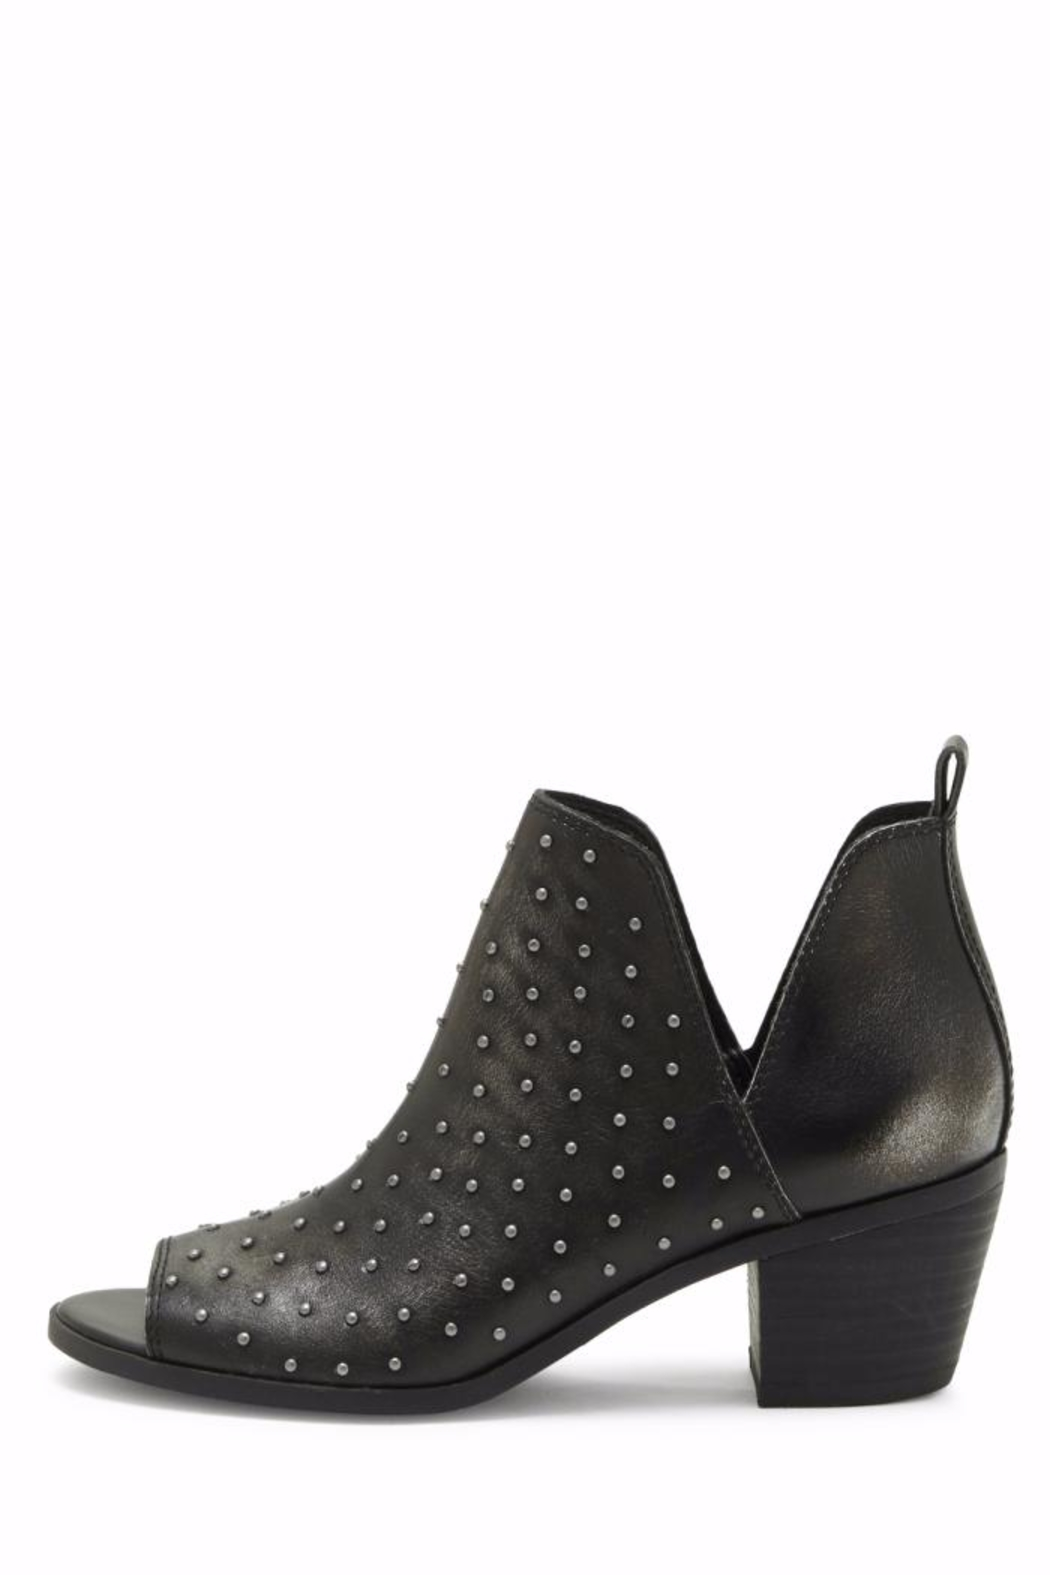 Lucky Brand Barlenna Peep Toe Bootie - Front Cropped Image